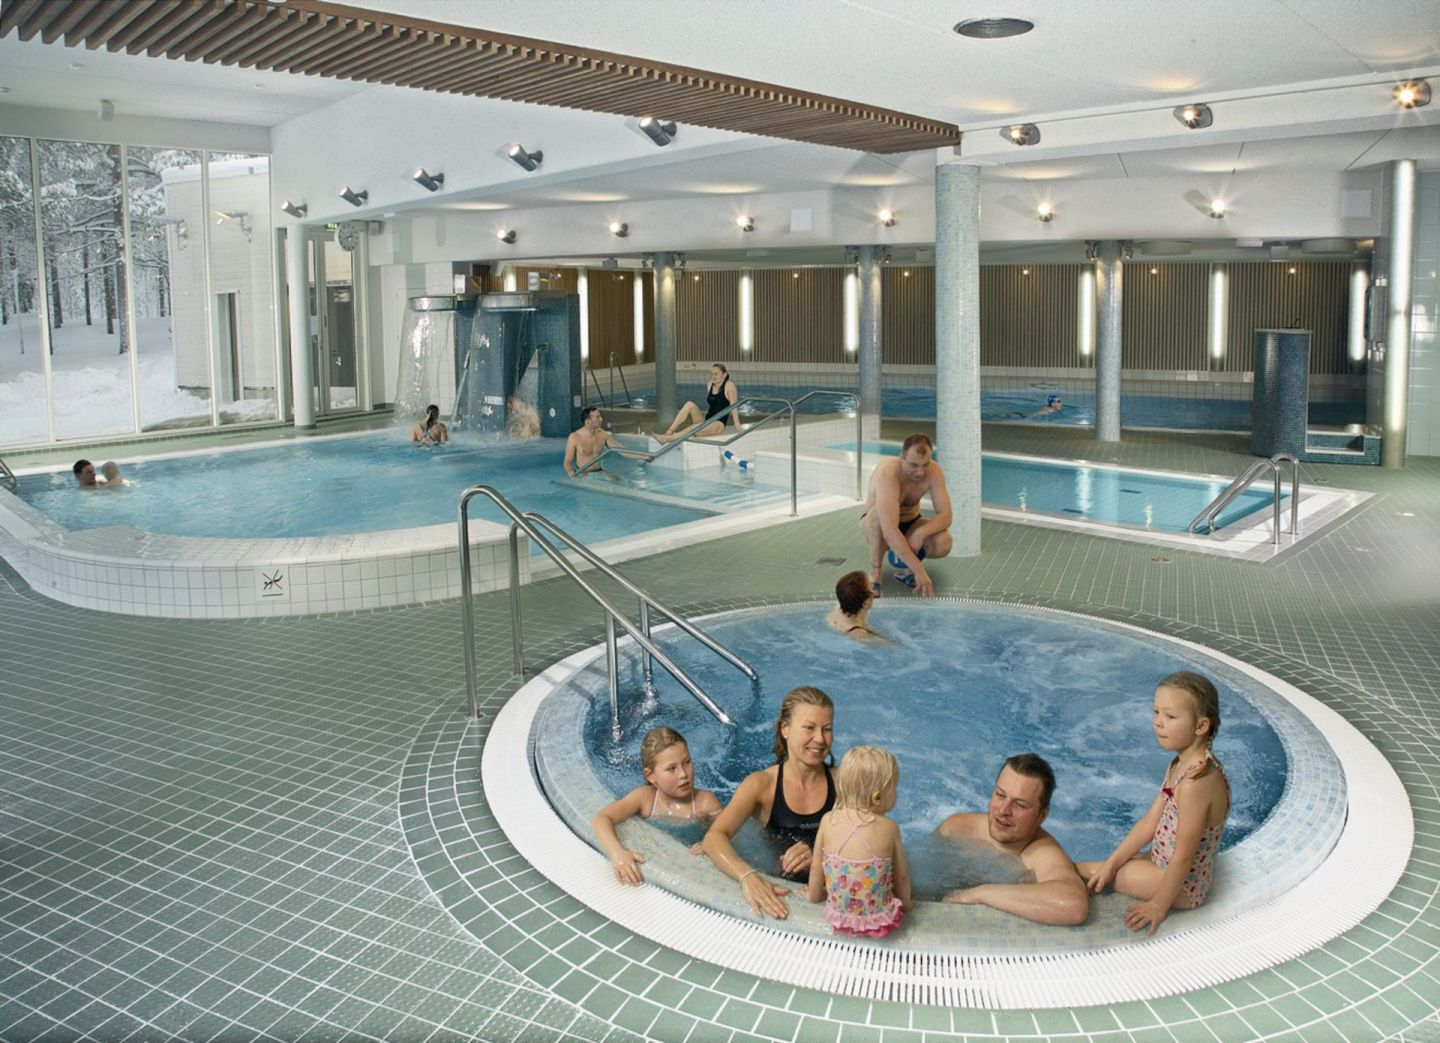 Spa and wellbeing treatments in Salla, Finland